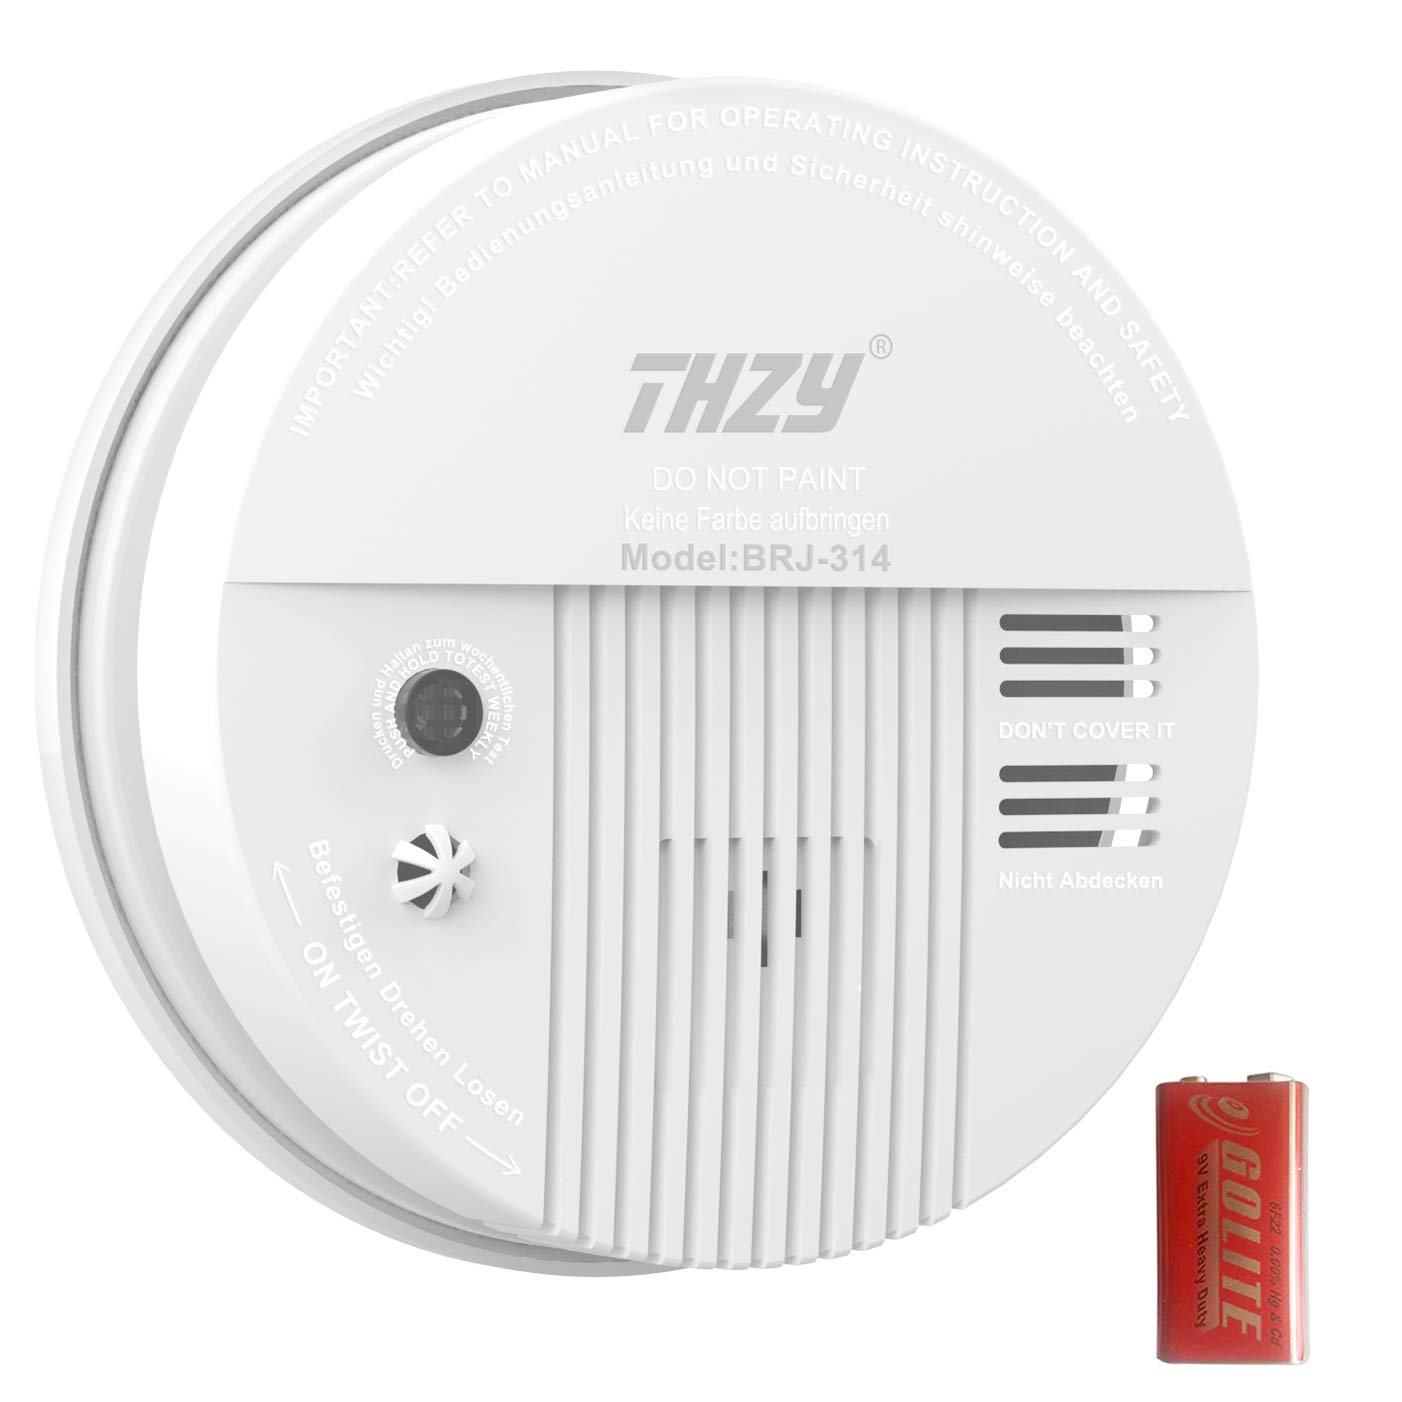 Smoke Carbon Monoxide Alarm THZY Battery Operated Carbon Monoxide CO Detector with Sound Warning and LED Light Indicator 9V Battery Back up White